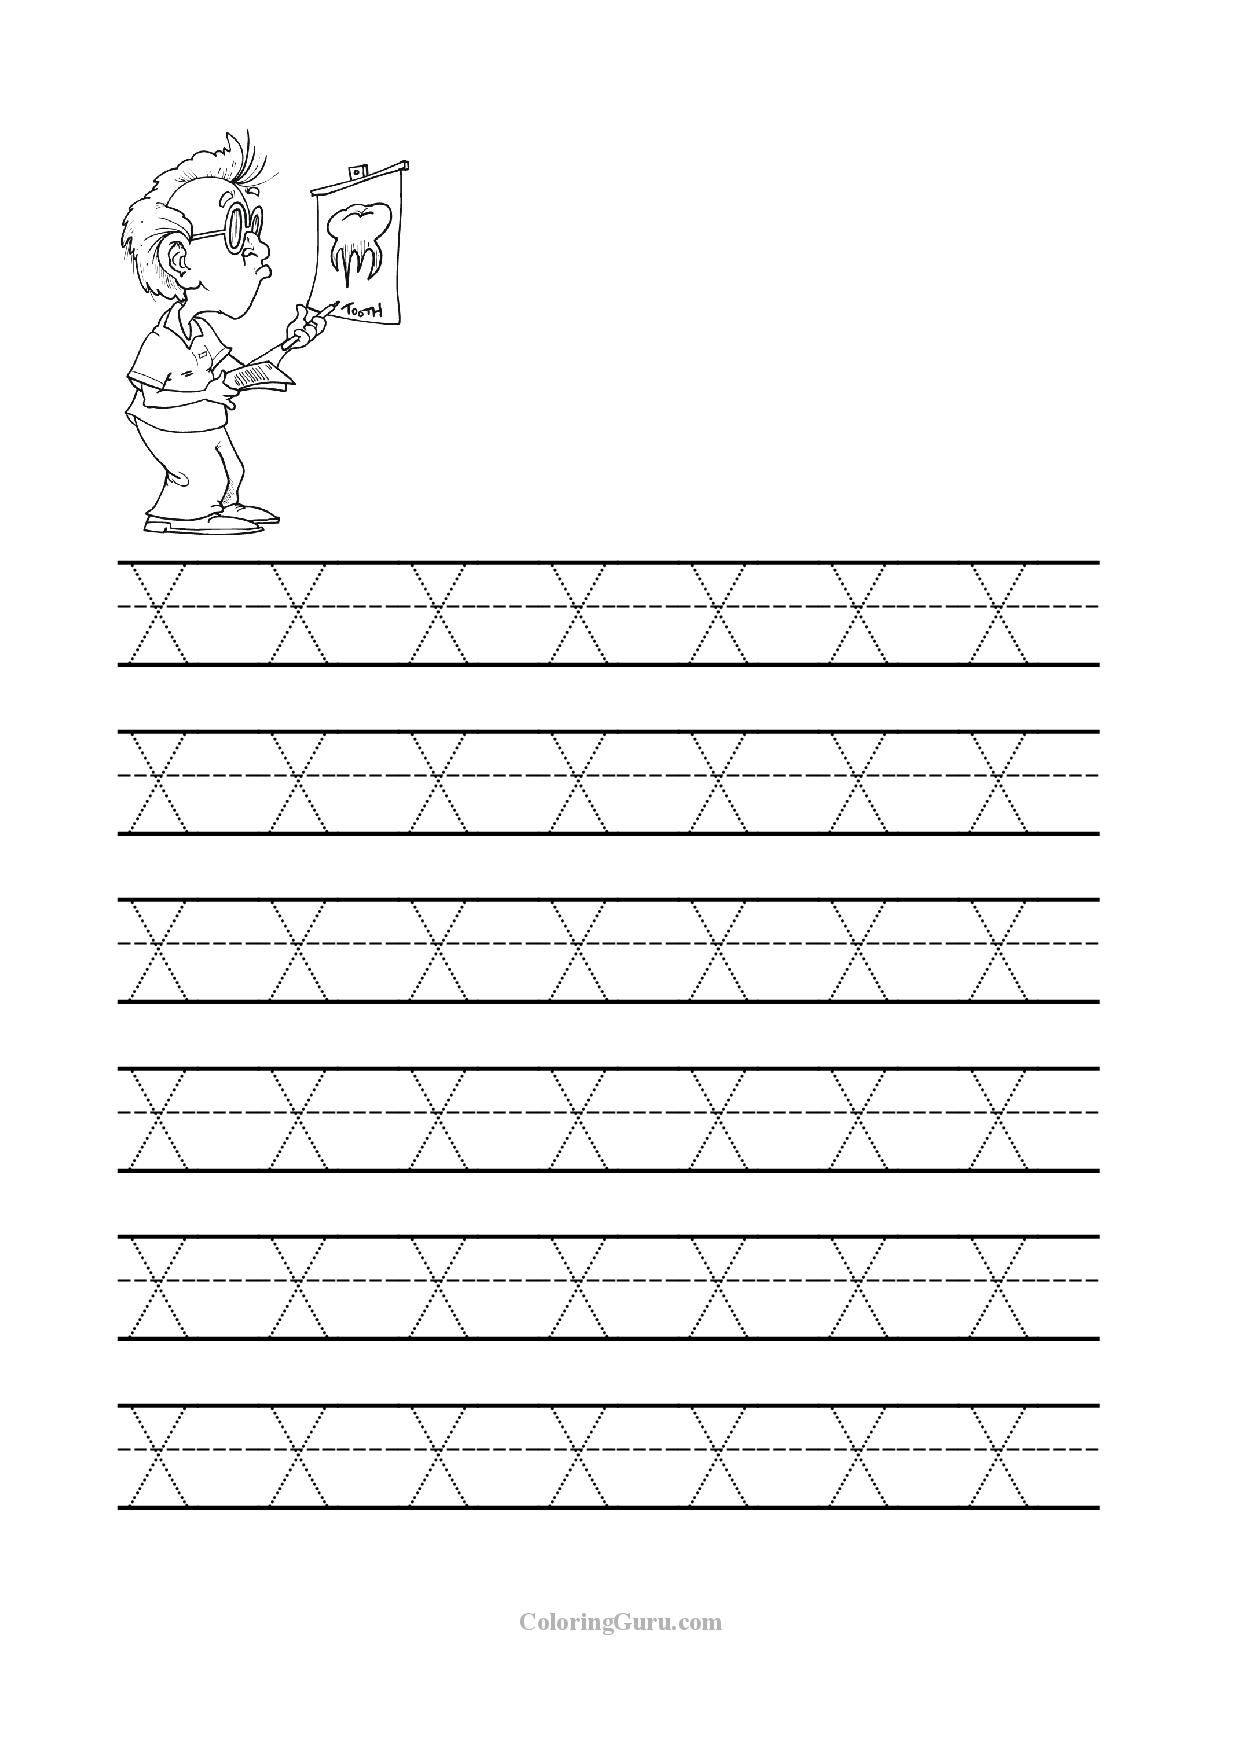 Free Printable Tracing Letter X Worksheets For Preschool with Letter X Tracing Worksheets